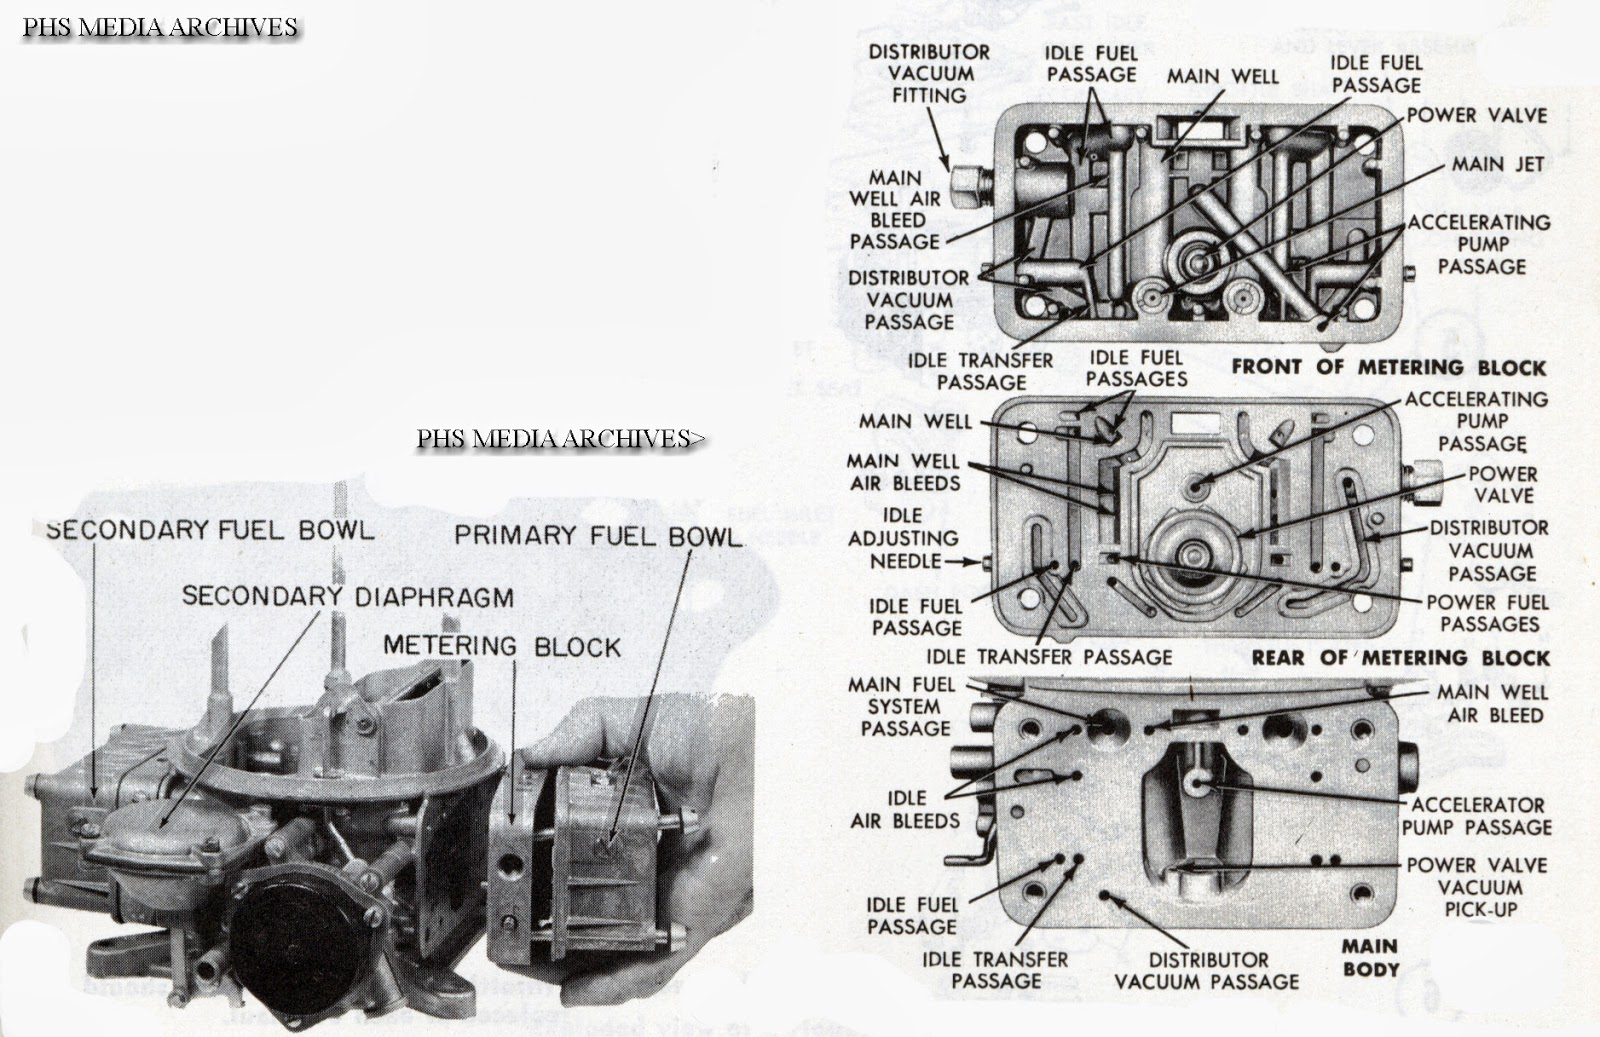 Holley Carburetor Identification Guide